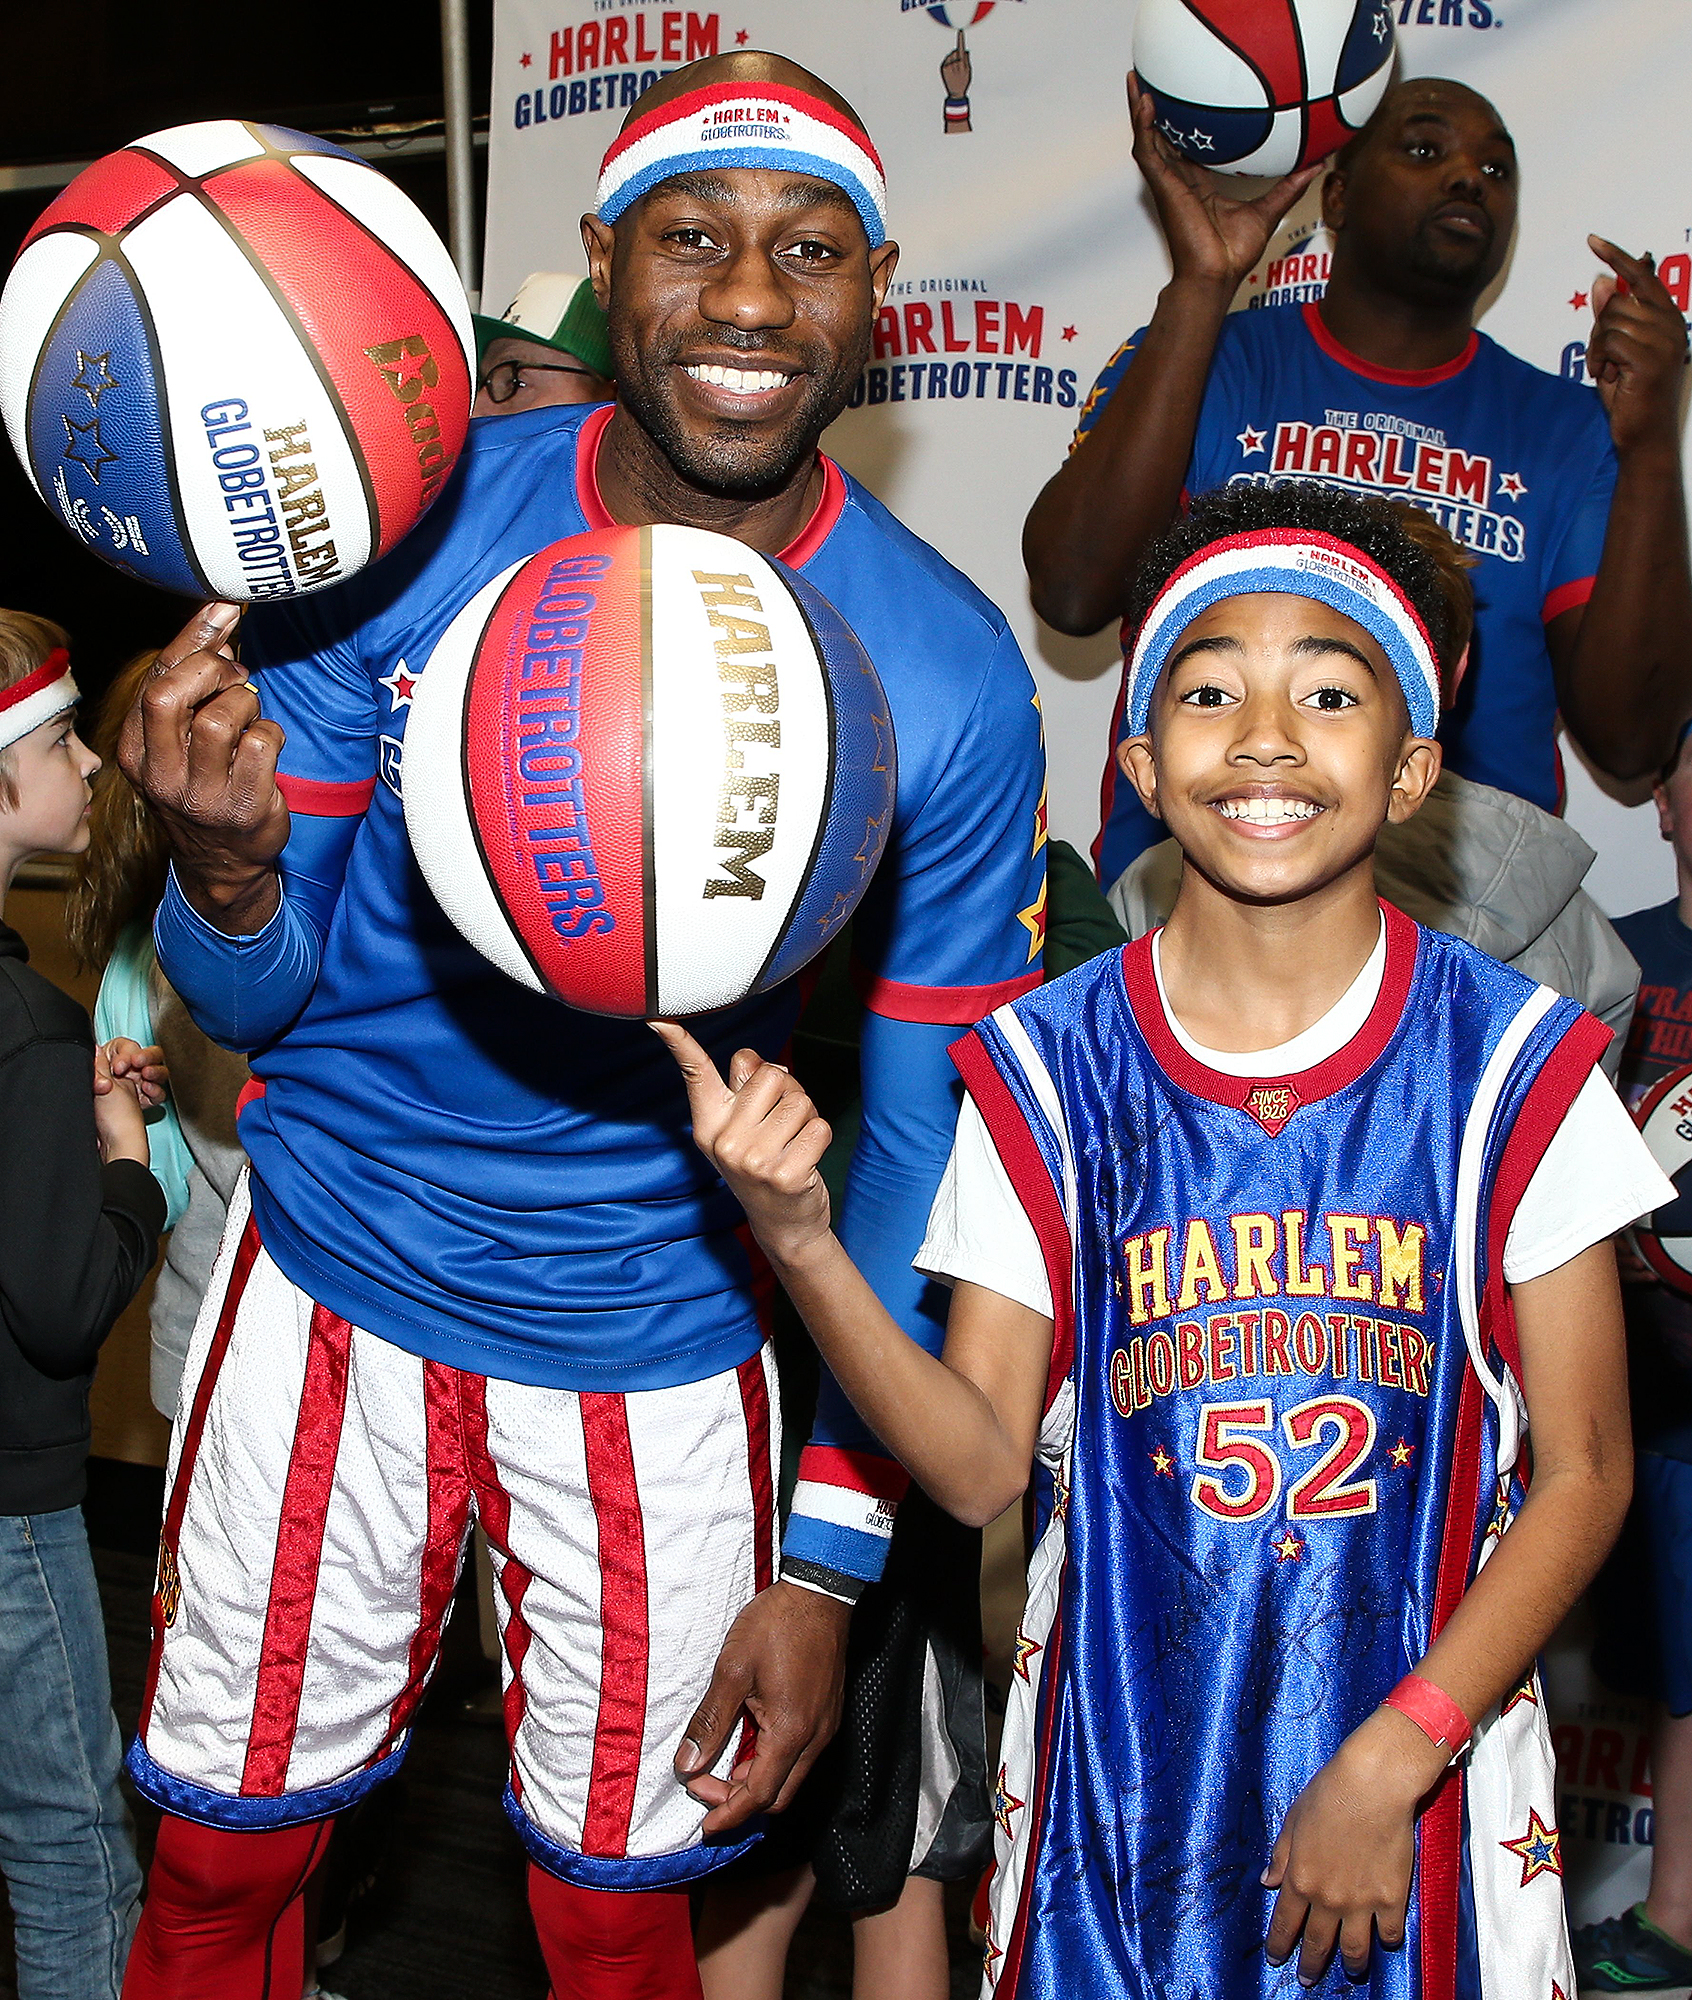 EXCLUSIVE, Celebrities attend Harlem Globetrotters game, Los Angeles, USA - 25 Feb 2018